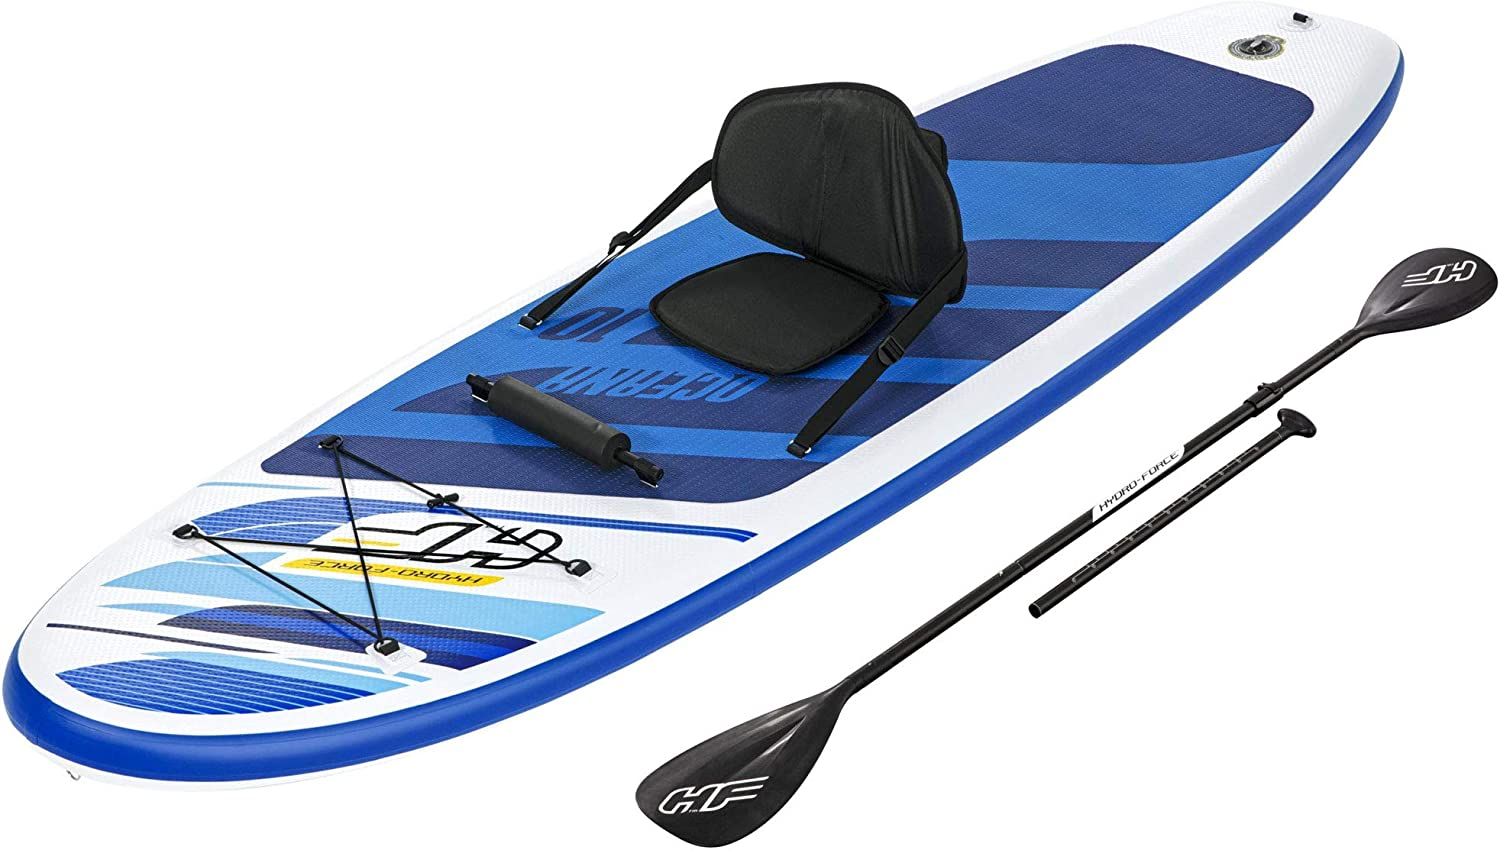 Bestway Hydro Force Oceana Inflatable 10 Foot Sale SUP Paddl Up Stand cheap